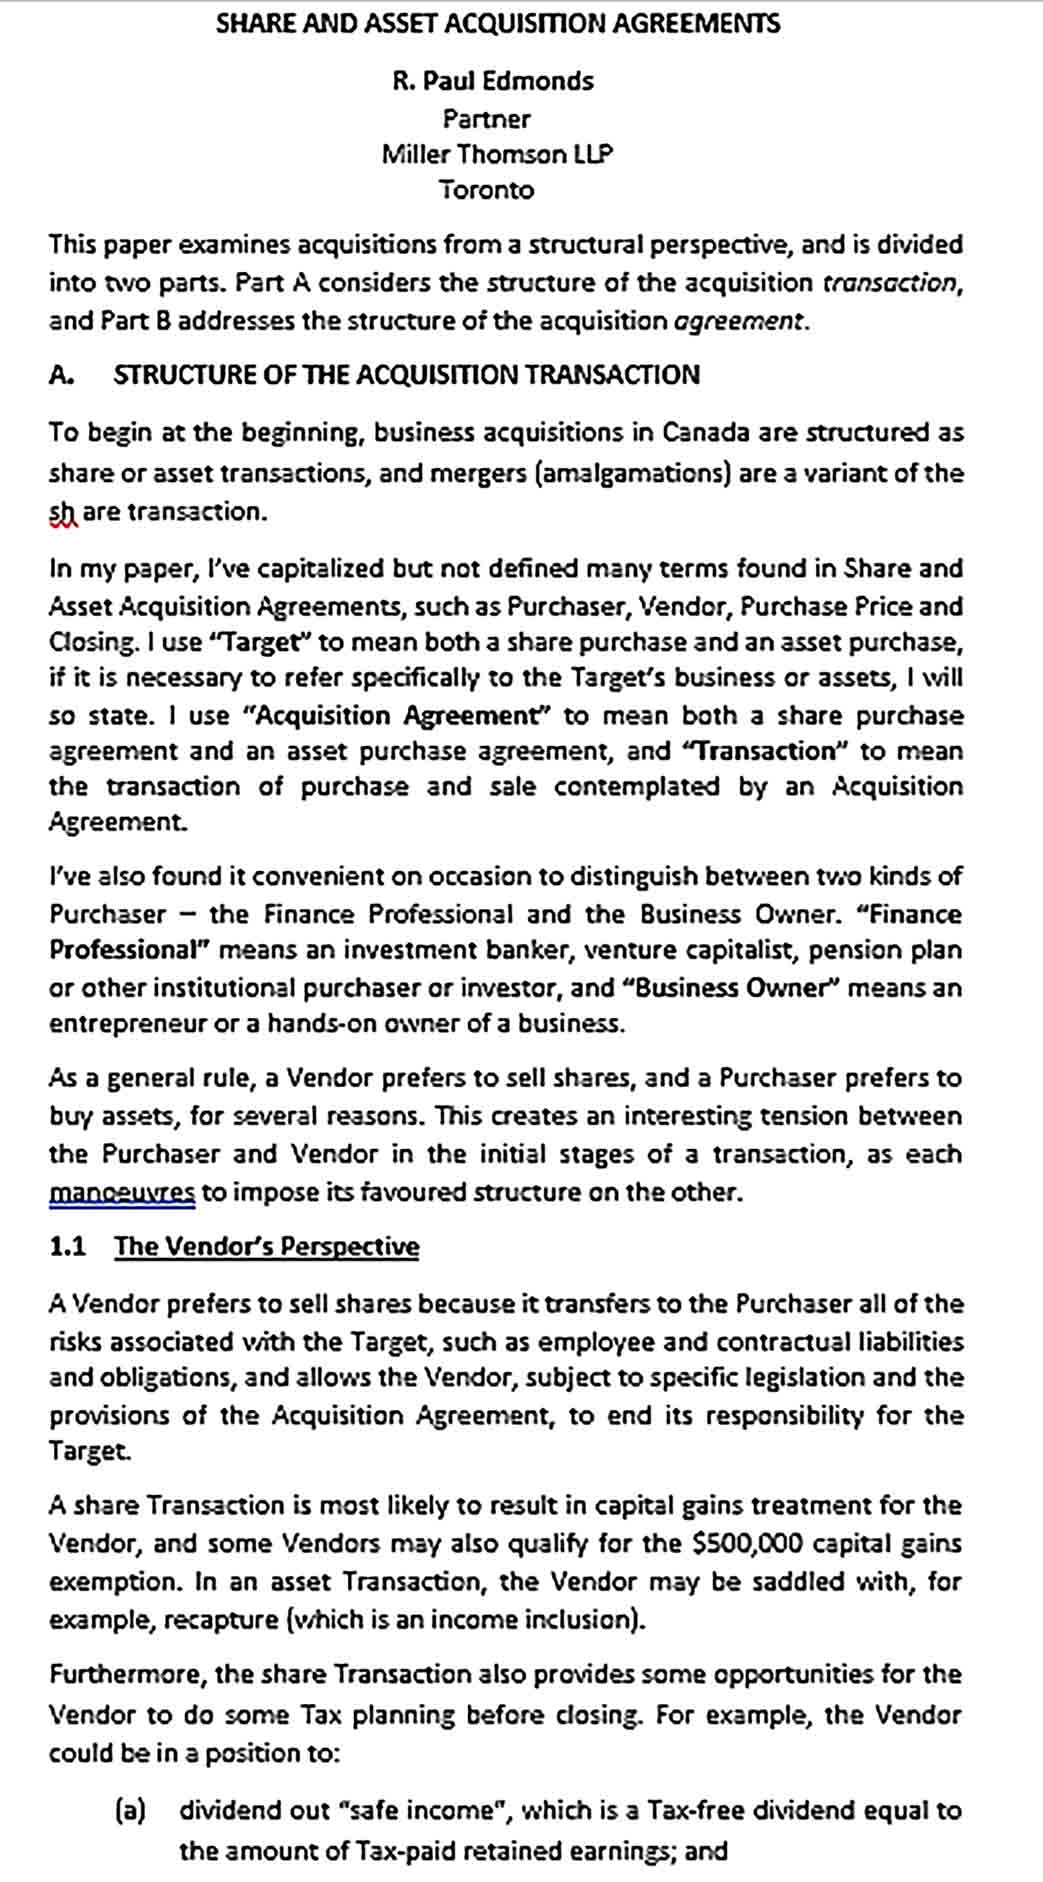 Sample Share Asset Acquisition Agreement